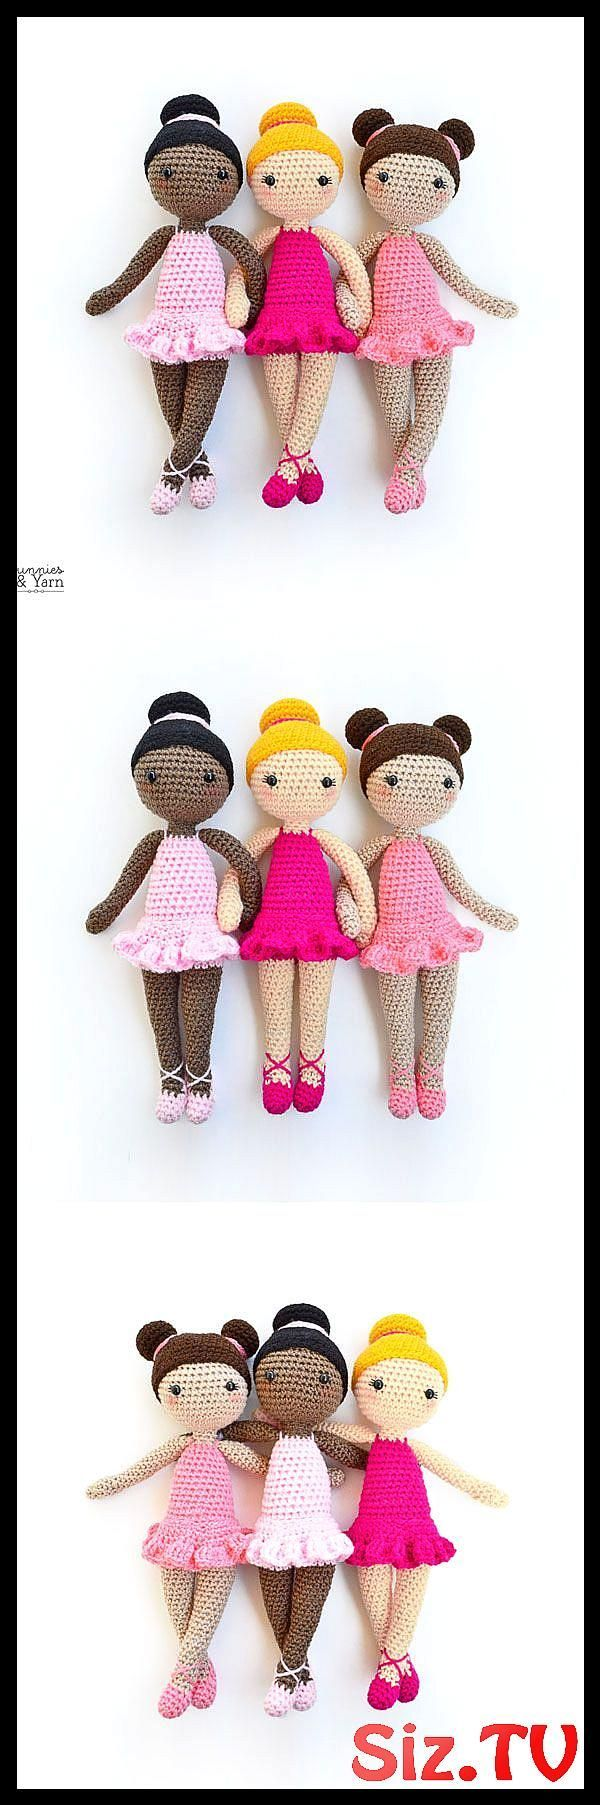 Crochet Pattern In English And Spanish Tracey The Ballerina Doll 11 In 28 Cm Tall Amigurumi Doll Crochet Toy Instant Pdf Download Crochet Pattern In English And Spanish Tracey The Ballerina Doll 11 In 28 Cm Tall Amigurumi Doll Crochet Toy Instant Pdf Download